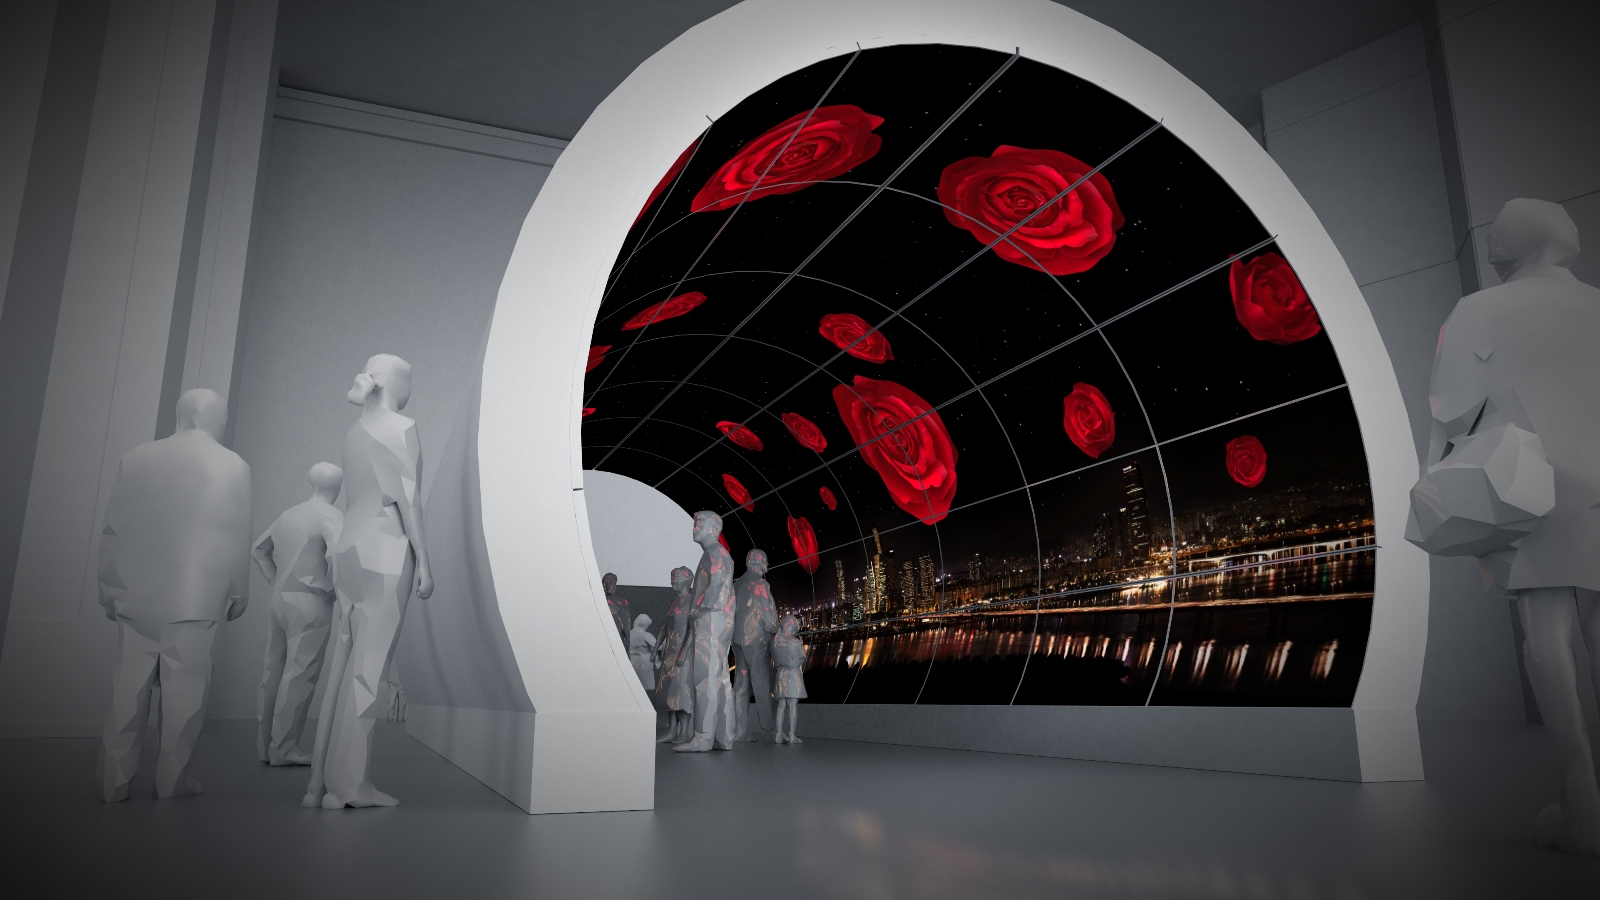 oled tv2 OLED TV Tunnel by LG